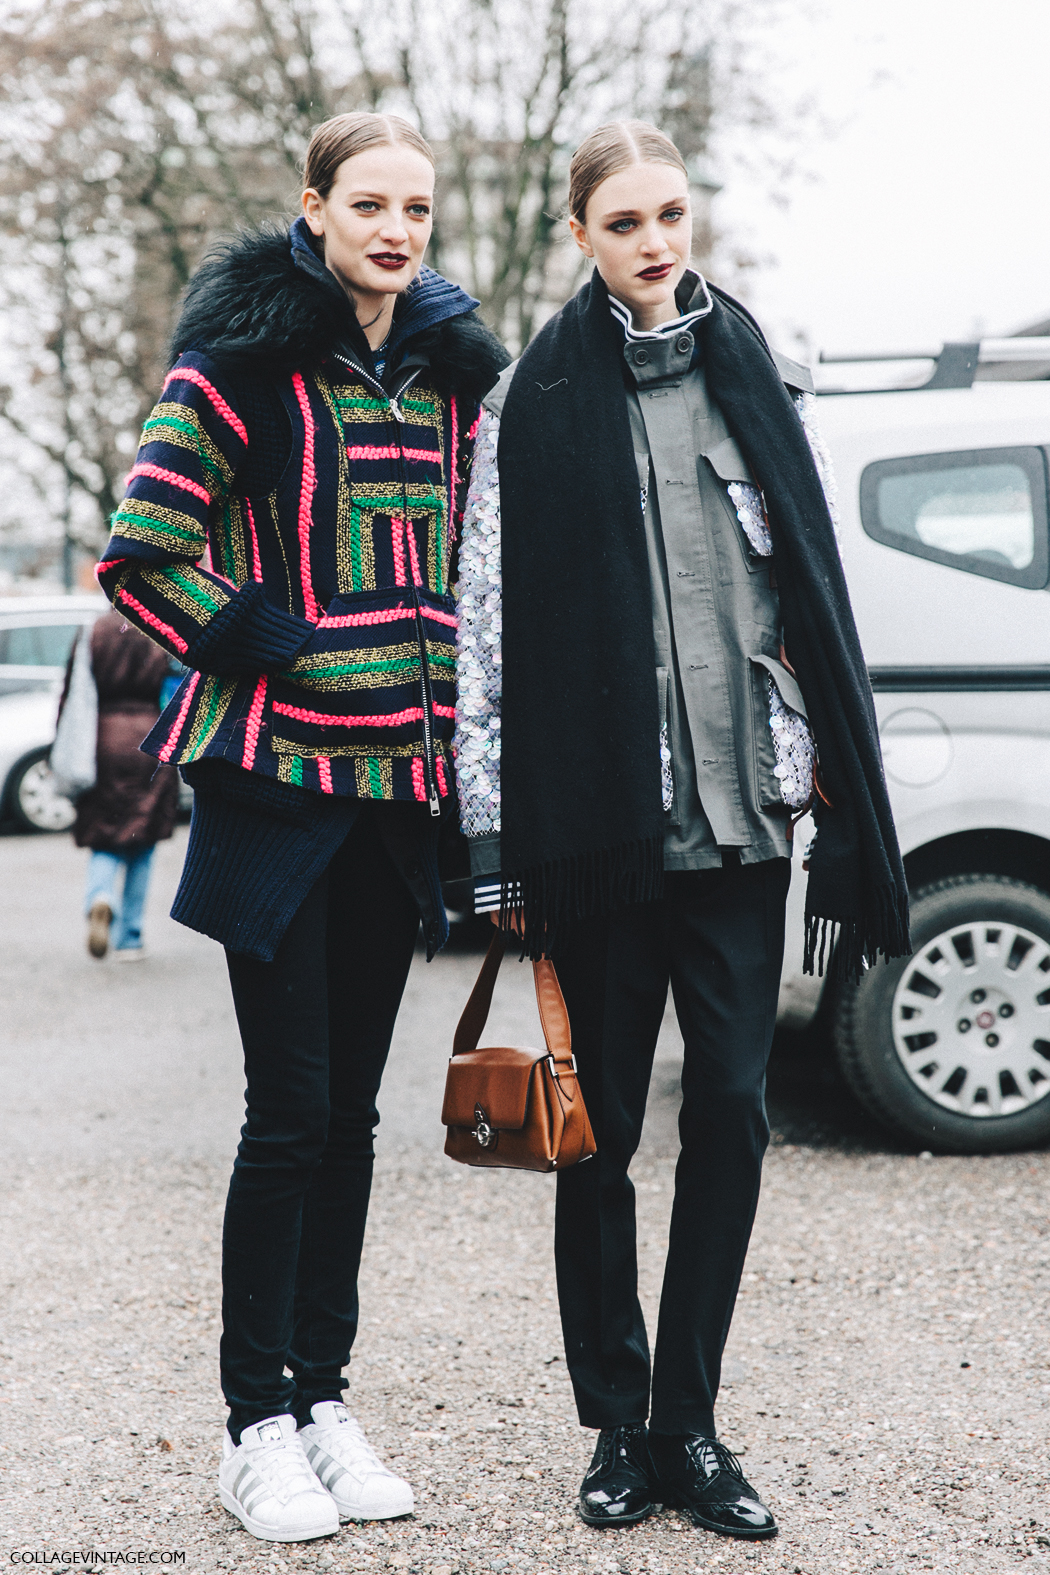 Milan_Fashion_Week_Fall_16-MFW-Street_Style-Collage_Vintage-Models-Bottega_Venetta-